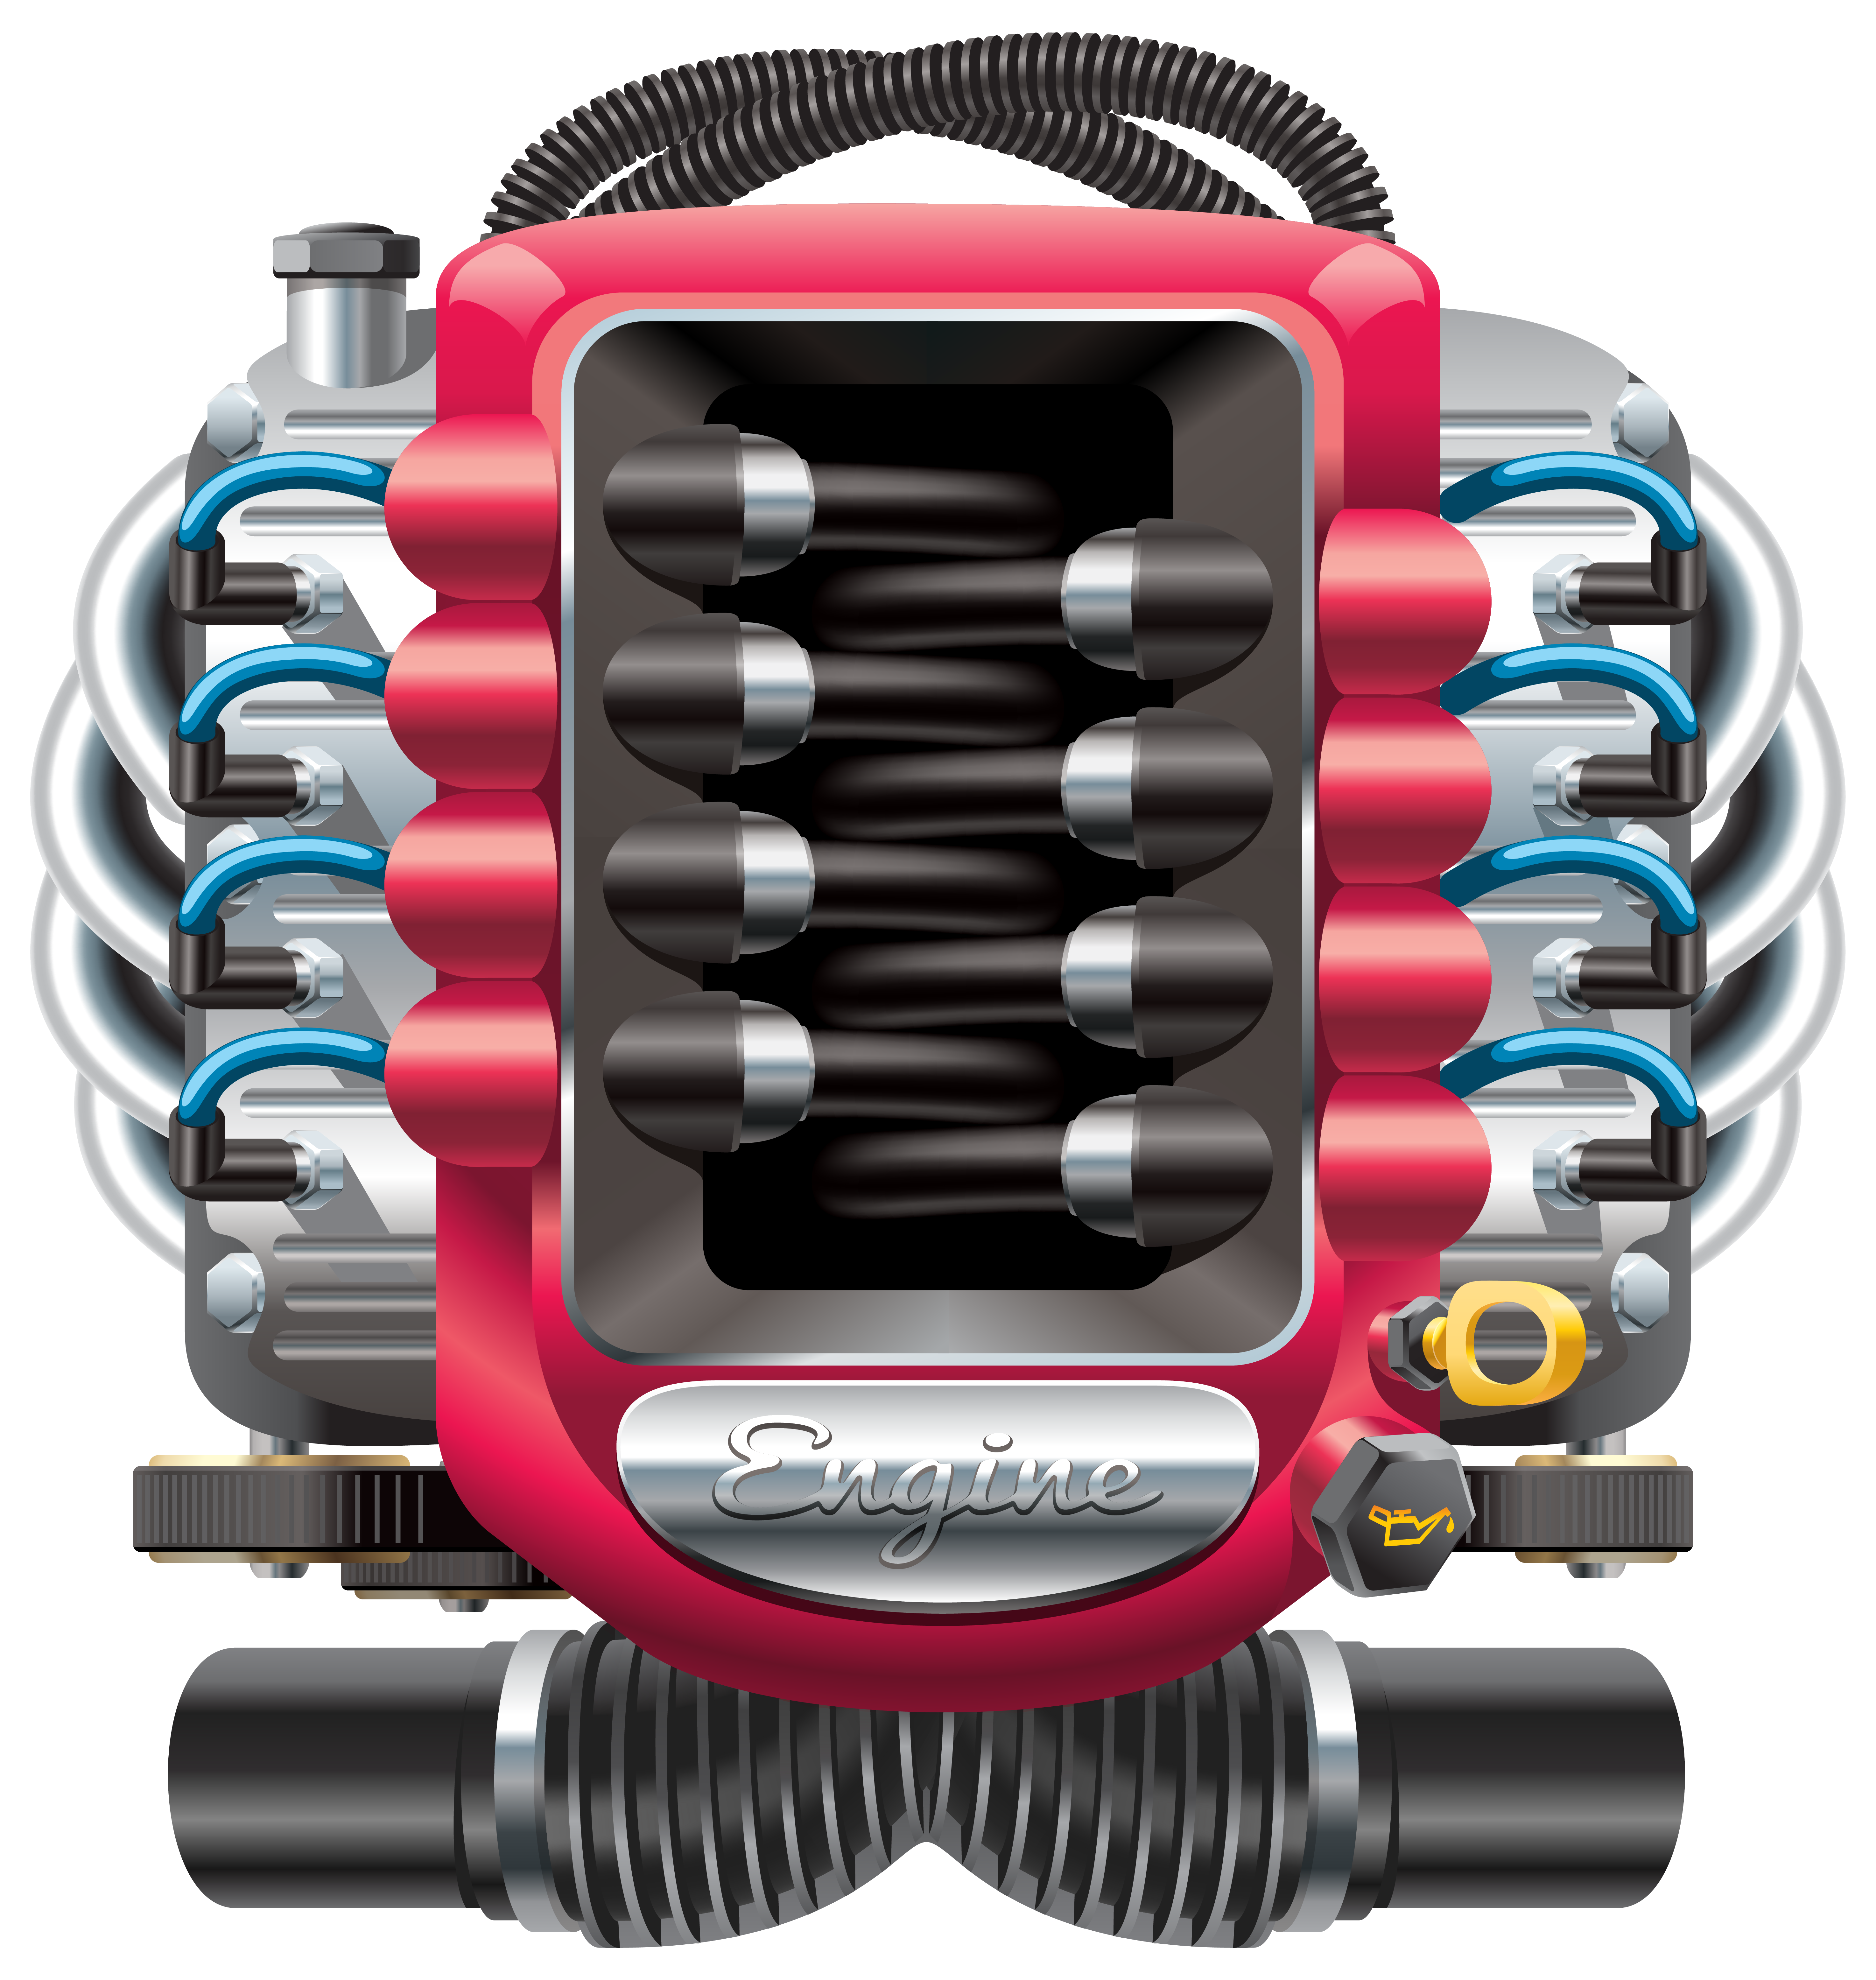 Car engine png clip. Clipart cars summer